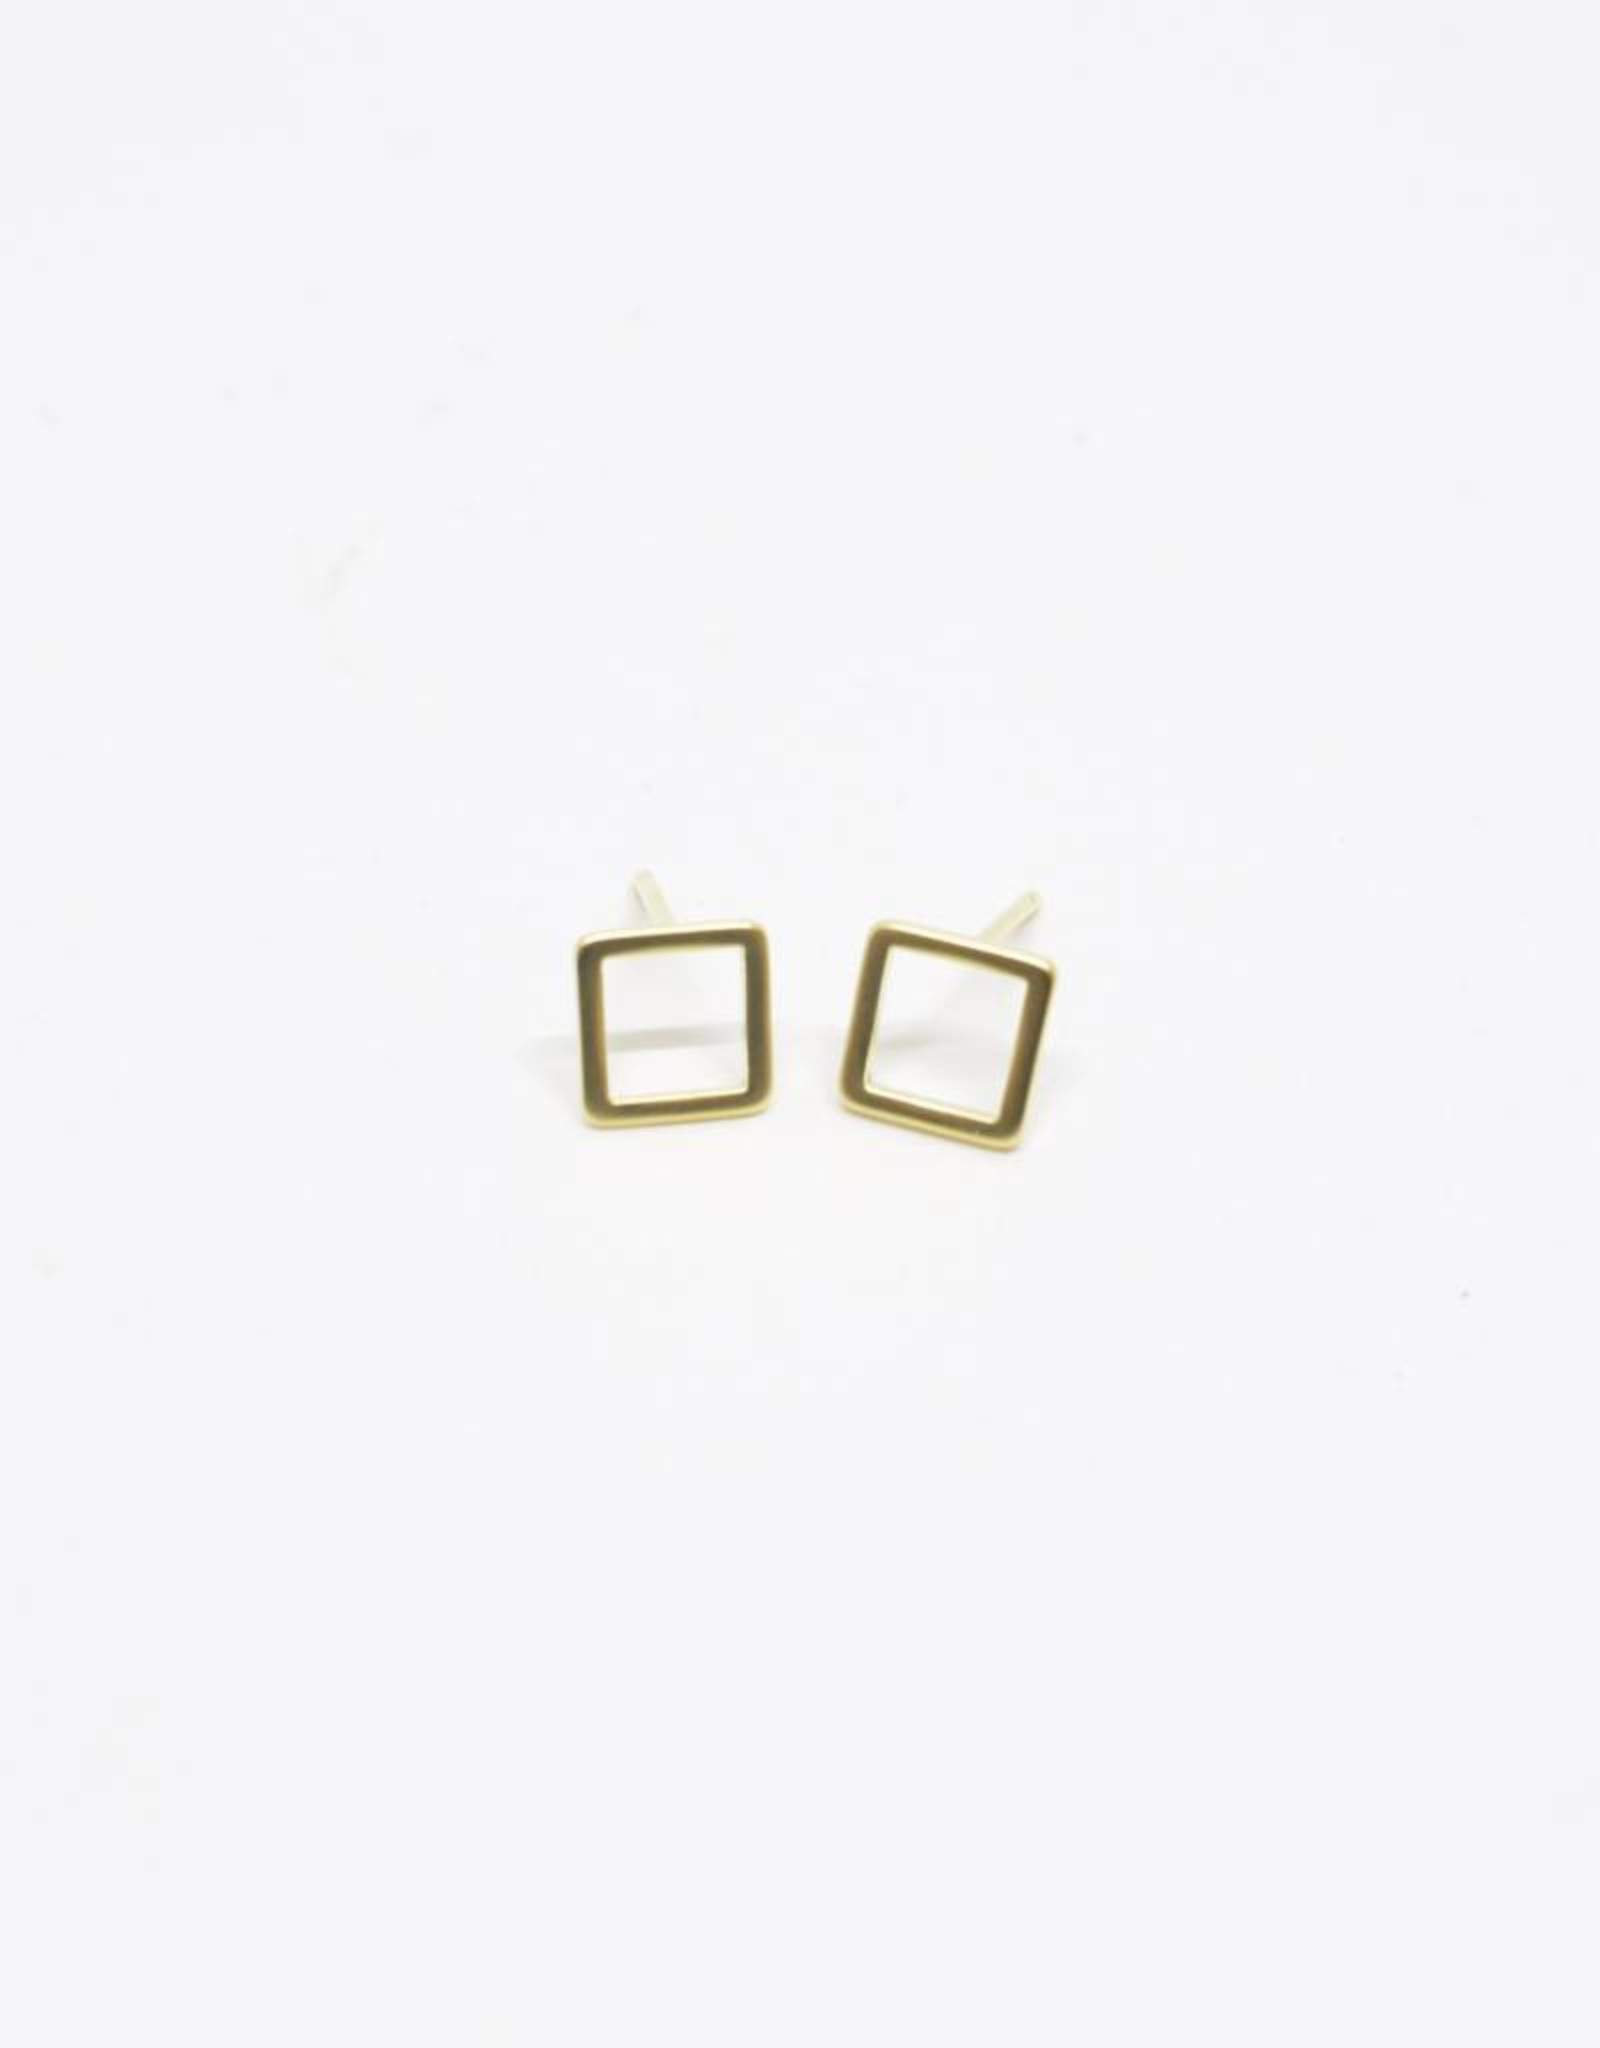 Standout Boutique Outline Stud Earrings - Square